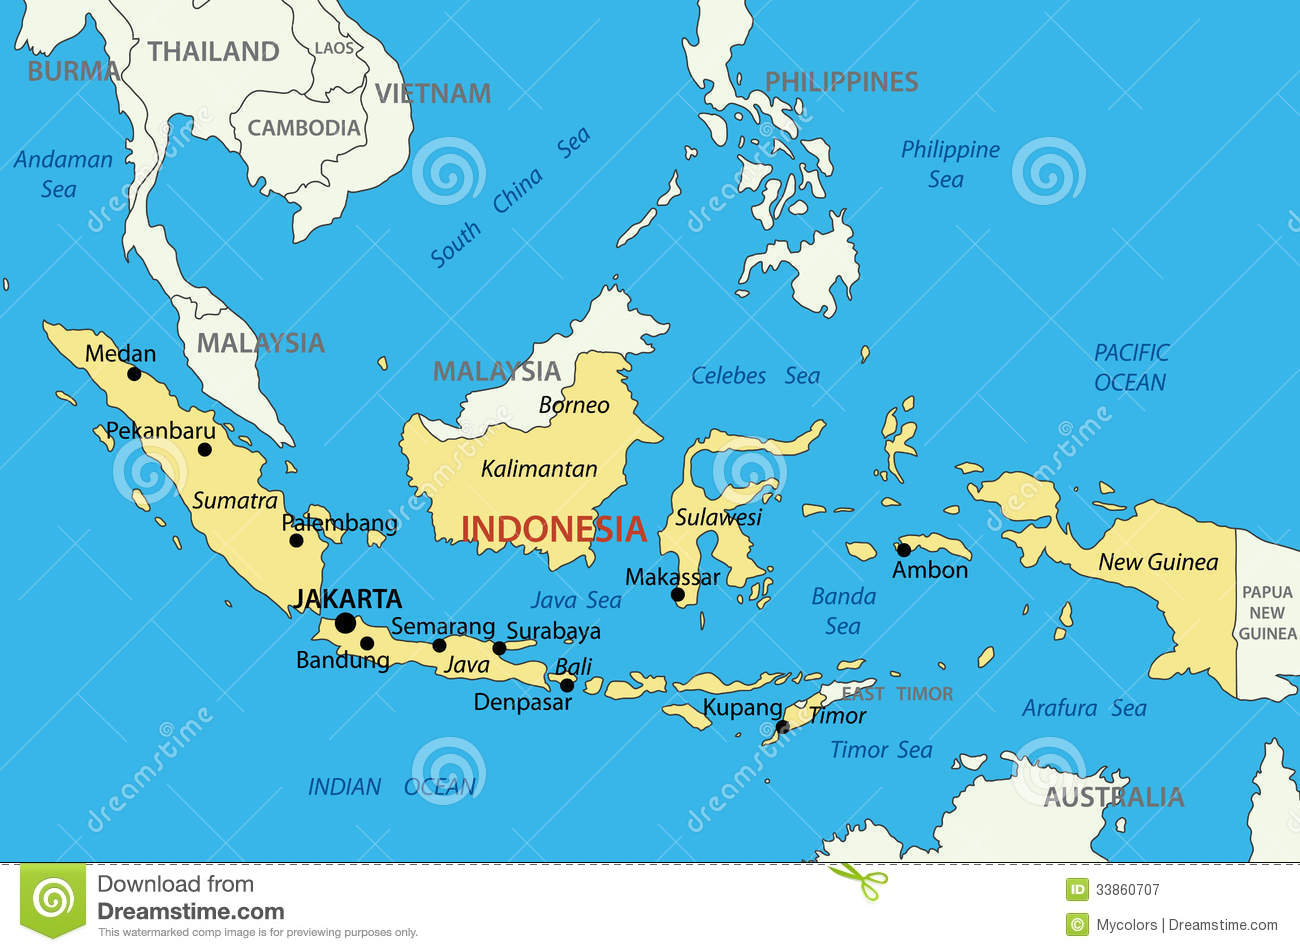 INDONESIA MAPA | Dictionary Bank INDONESIA MAPA